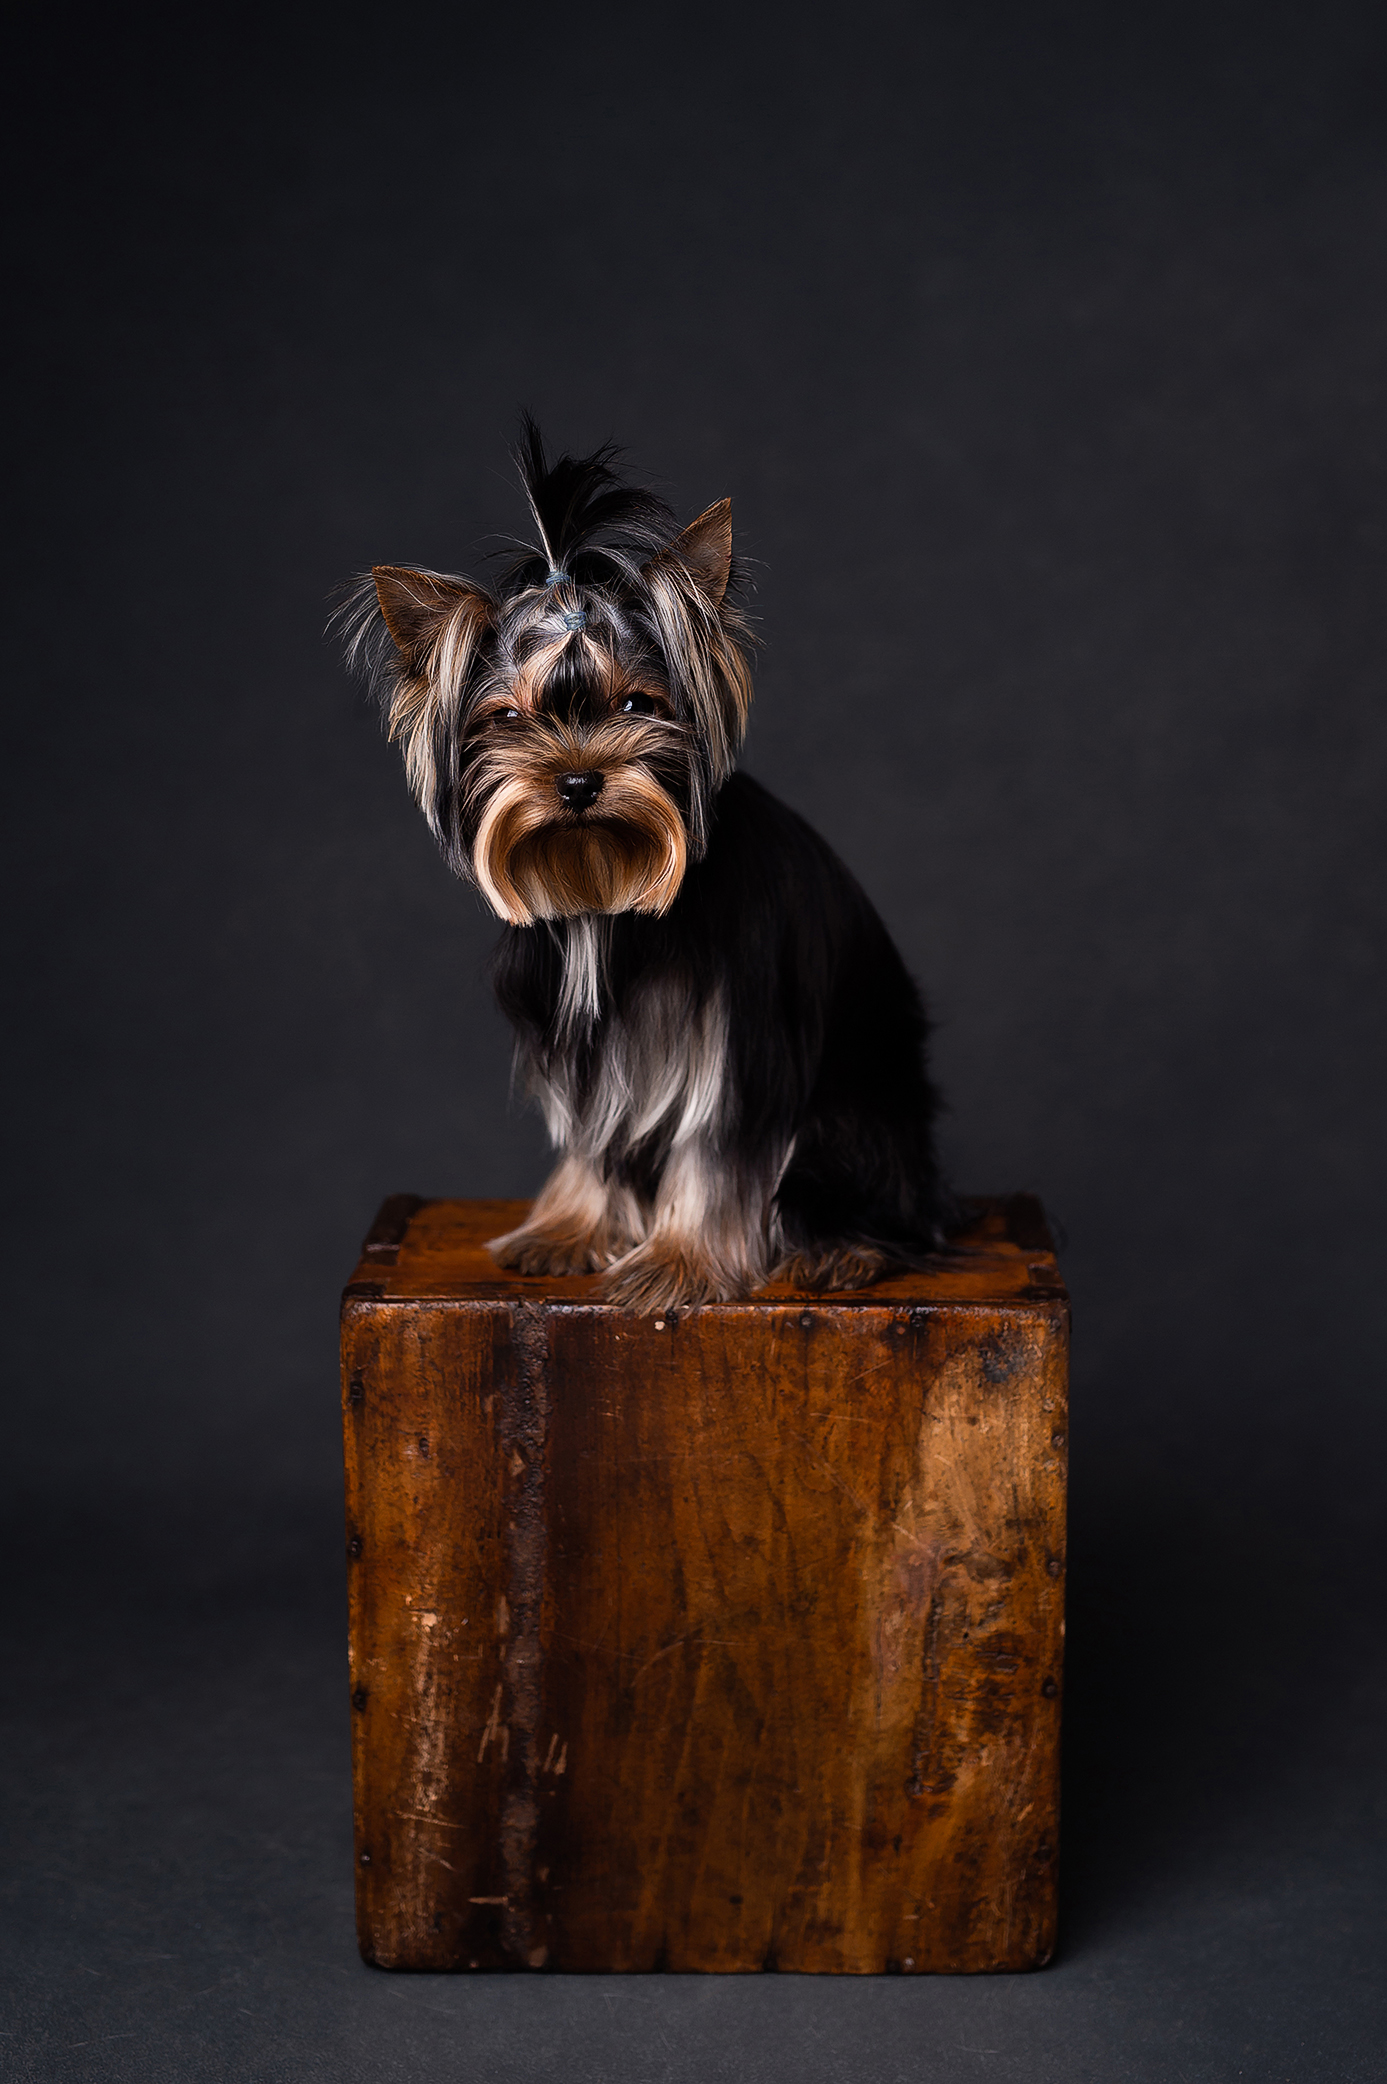 Yorkshire terrier on the wooden box